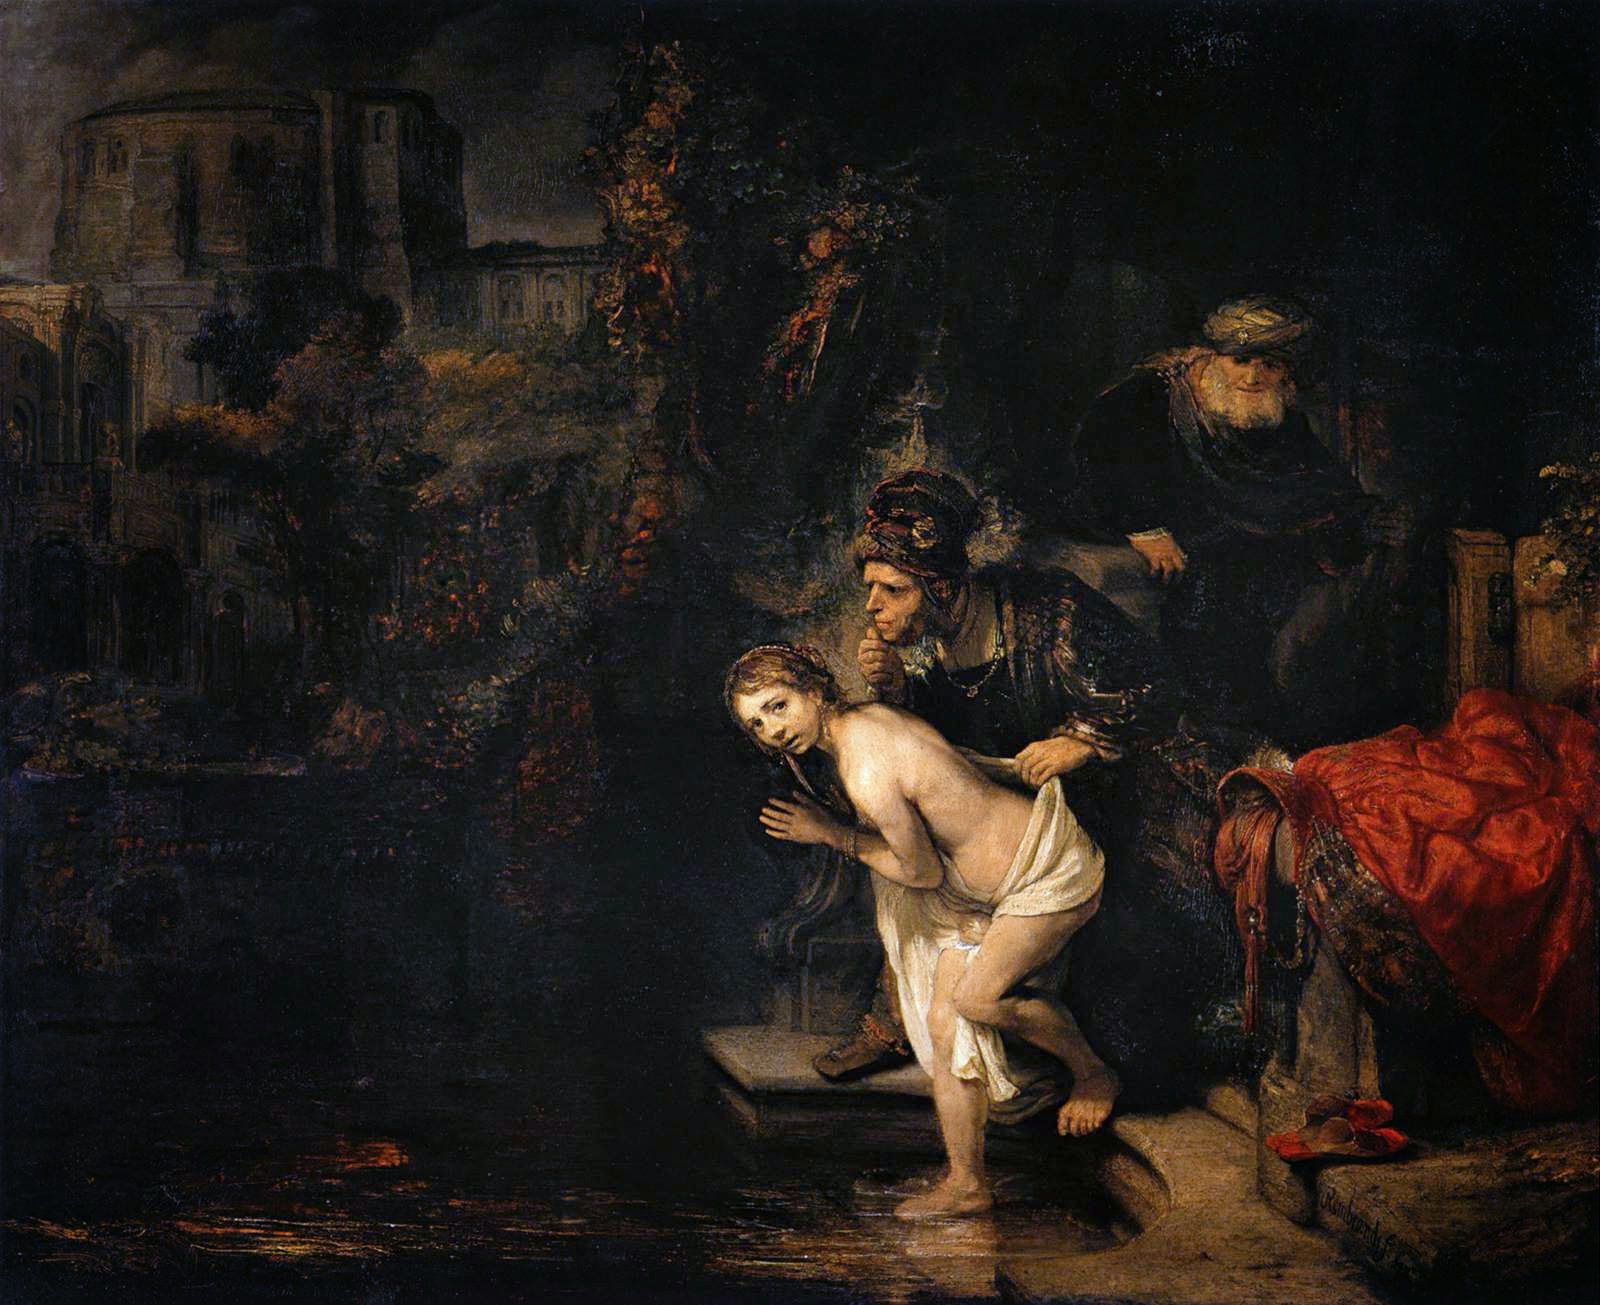 rembrandt to reynolds rembrandt susannah and the elders 1636 oil on mahogany panel 77 x 93 cm staatliche museen berlin